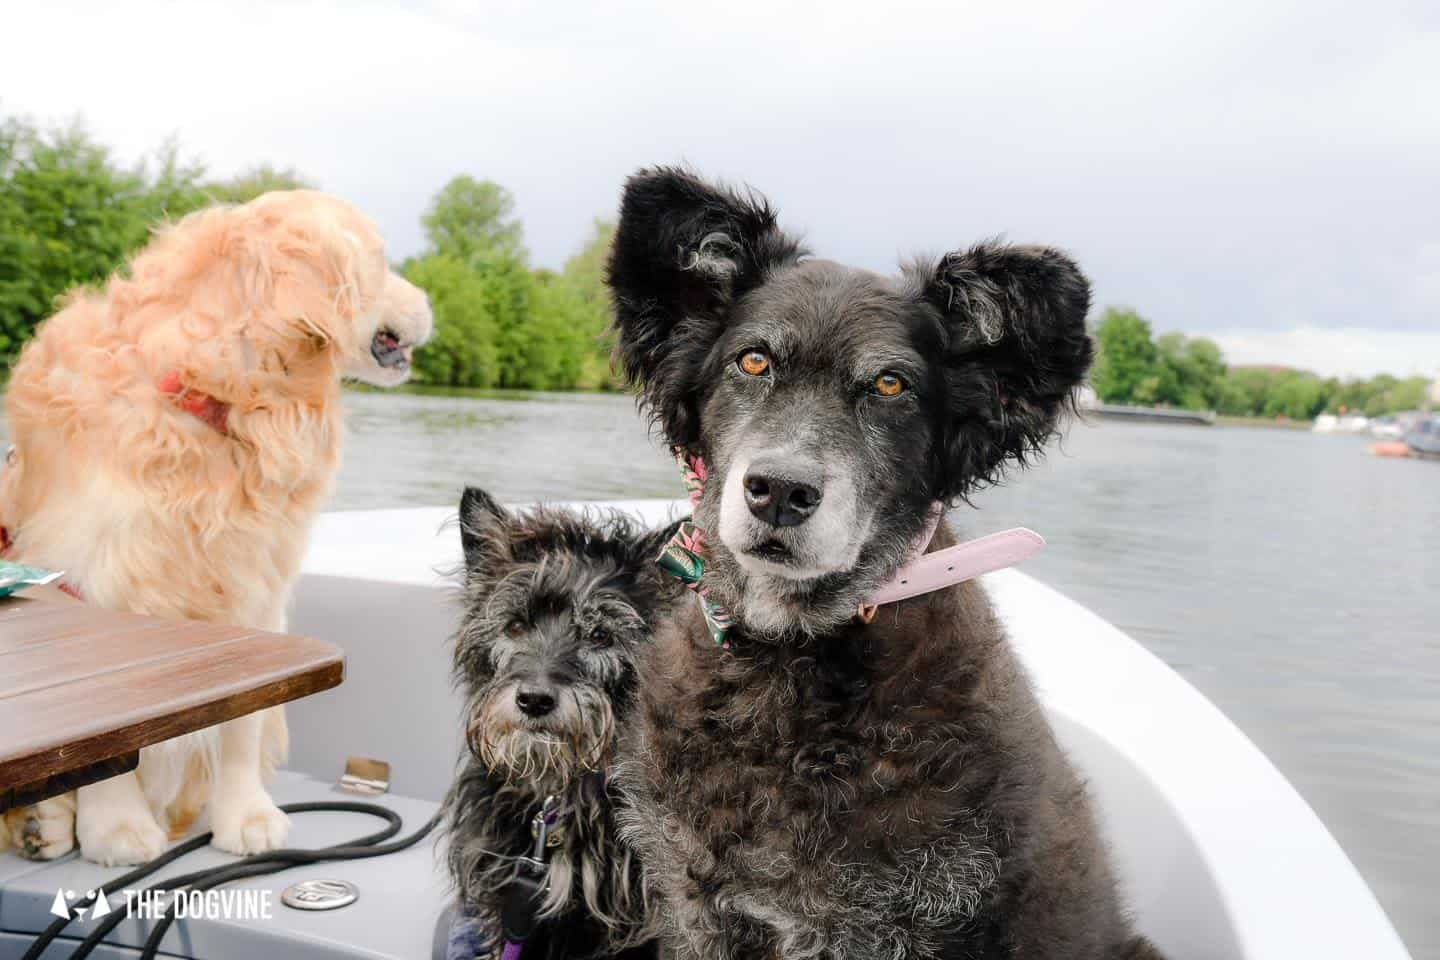 Dog-friendly Go Boat Kingston Upon Thames 19